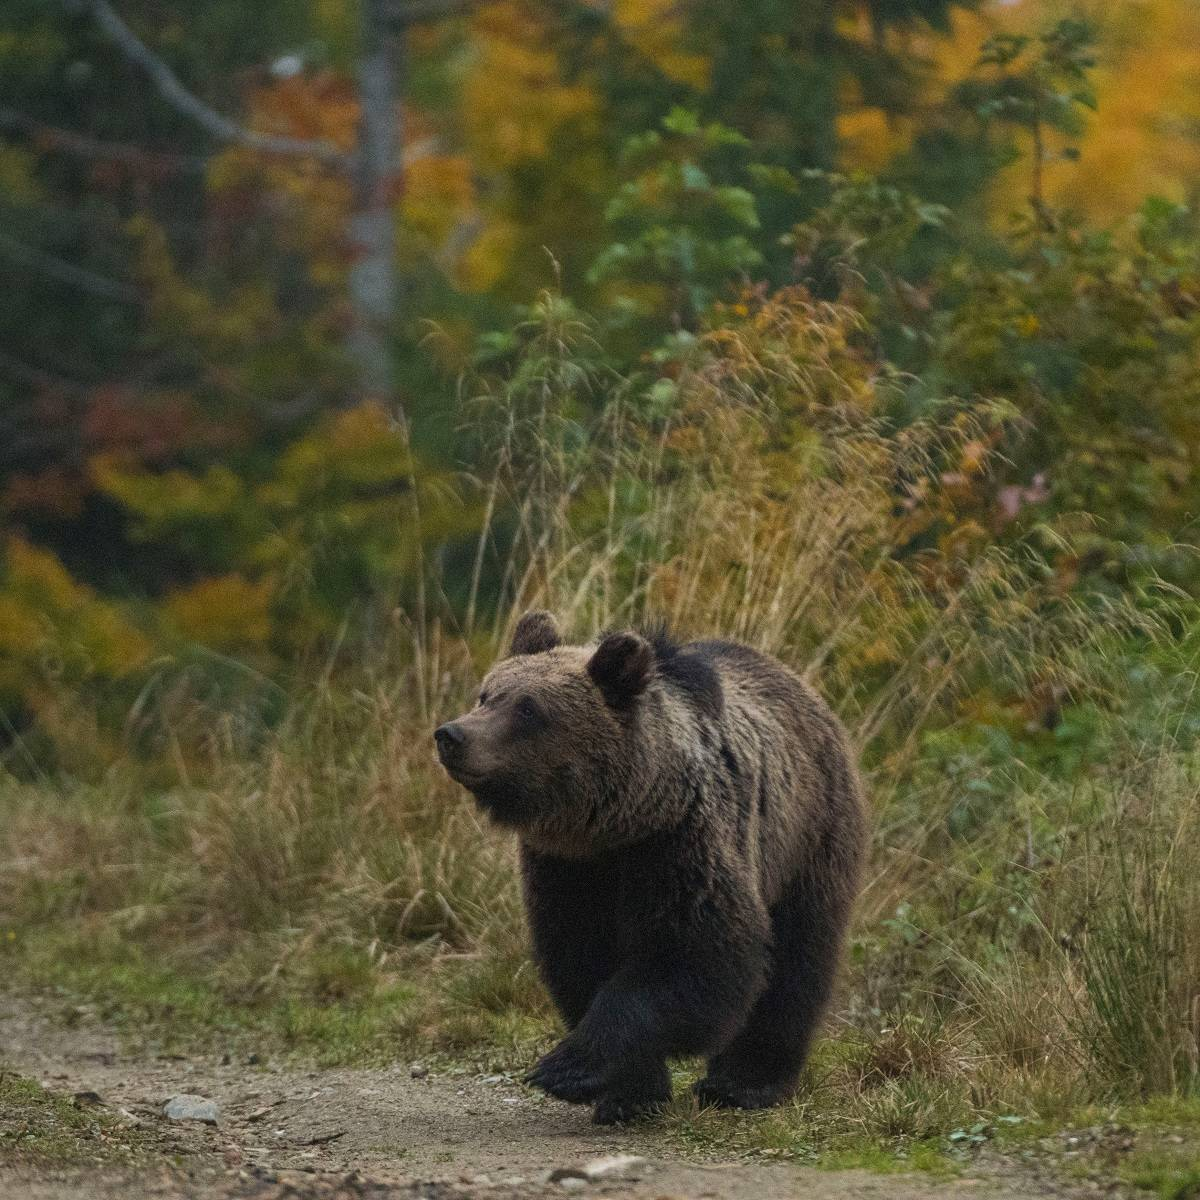 A brown bear strolls across a forest path against a backdrop of green and golden leaves